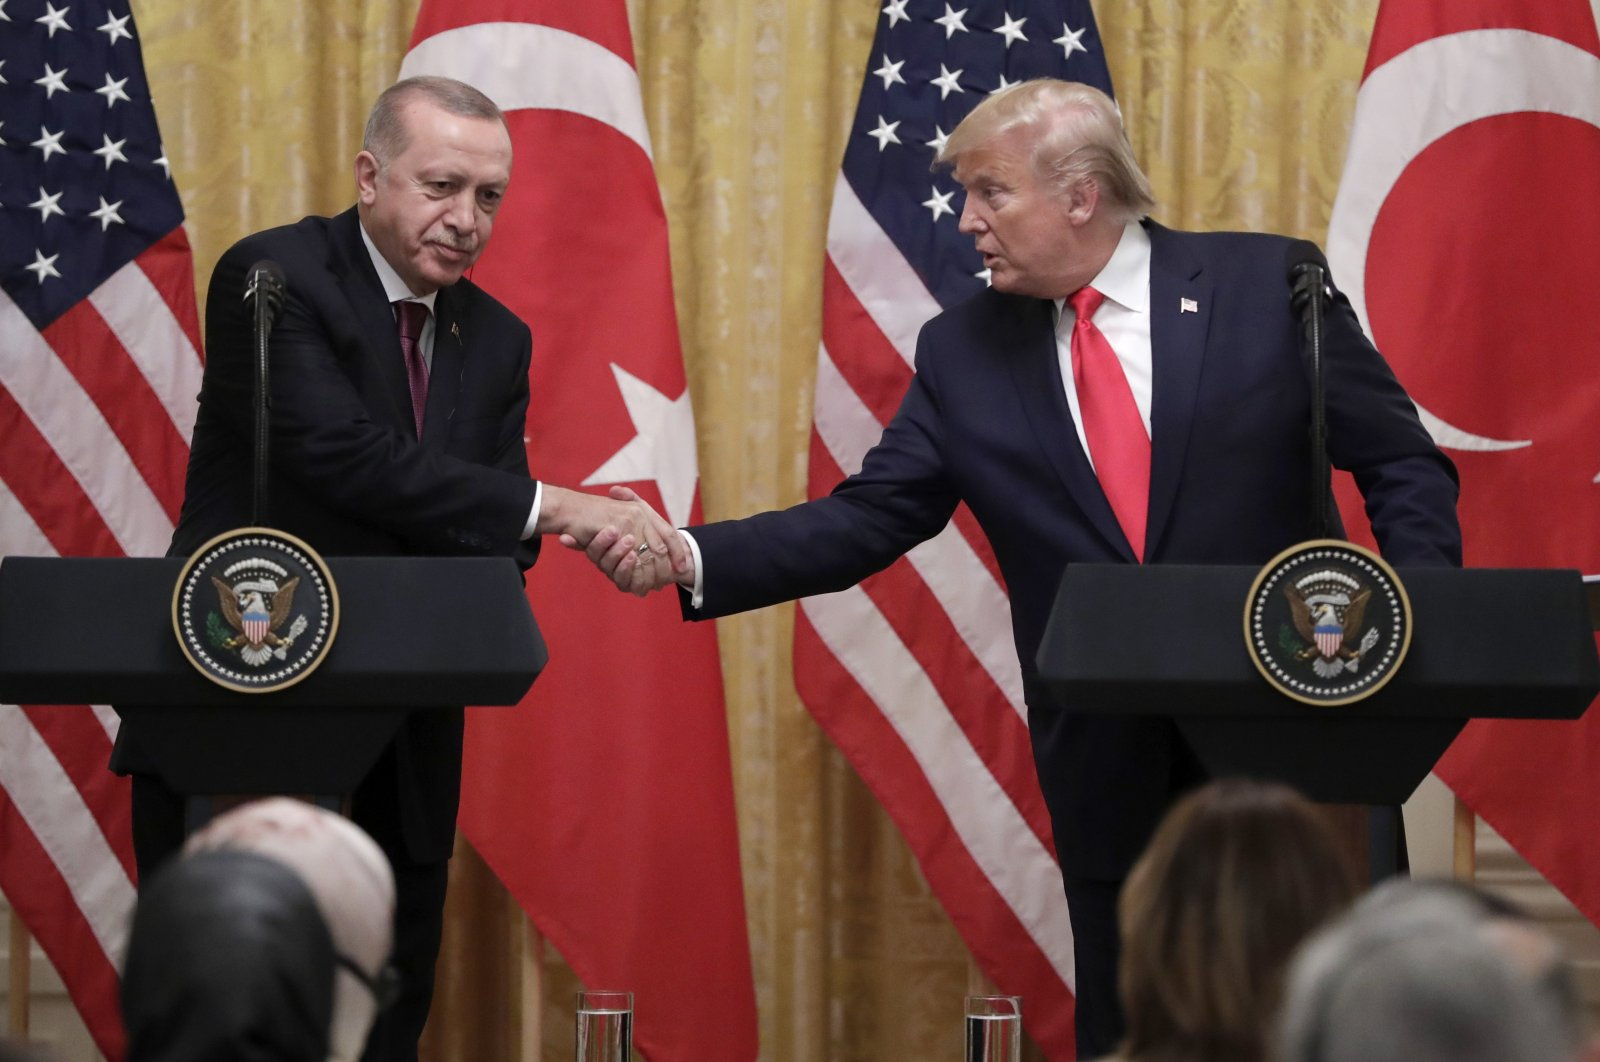 Turkey looks to benefit from opportunities to boost ties with US